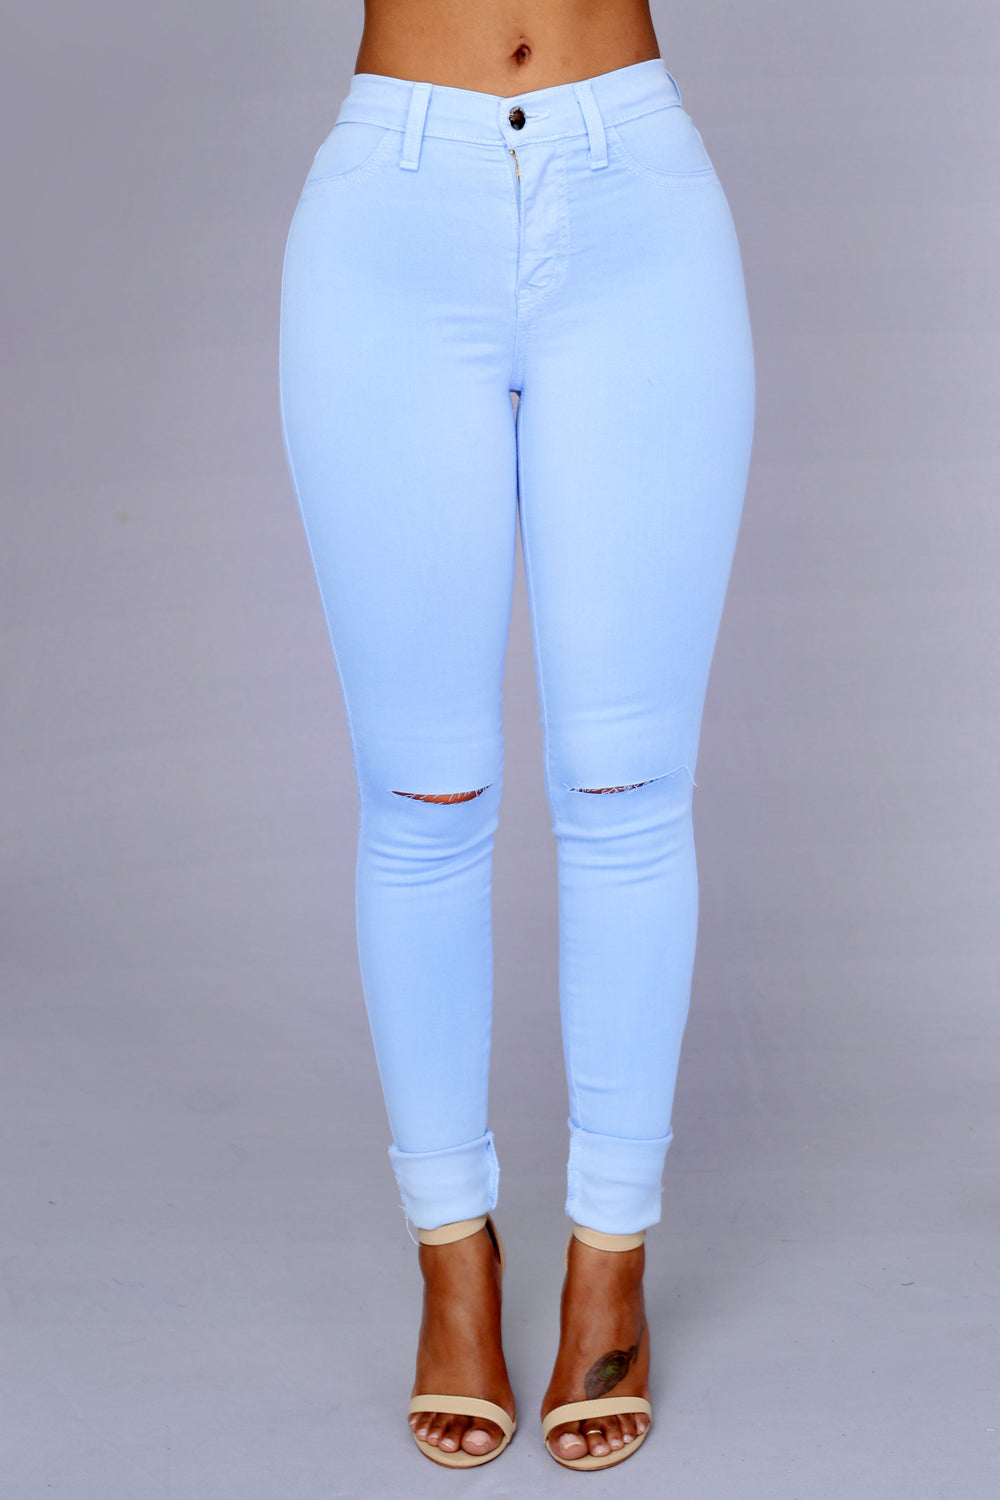 Canopy Jeans - Baby Blue